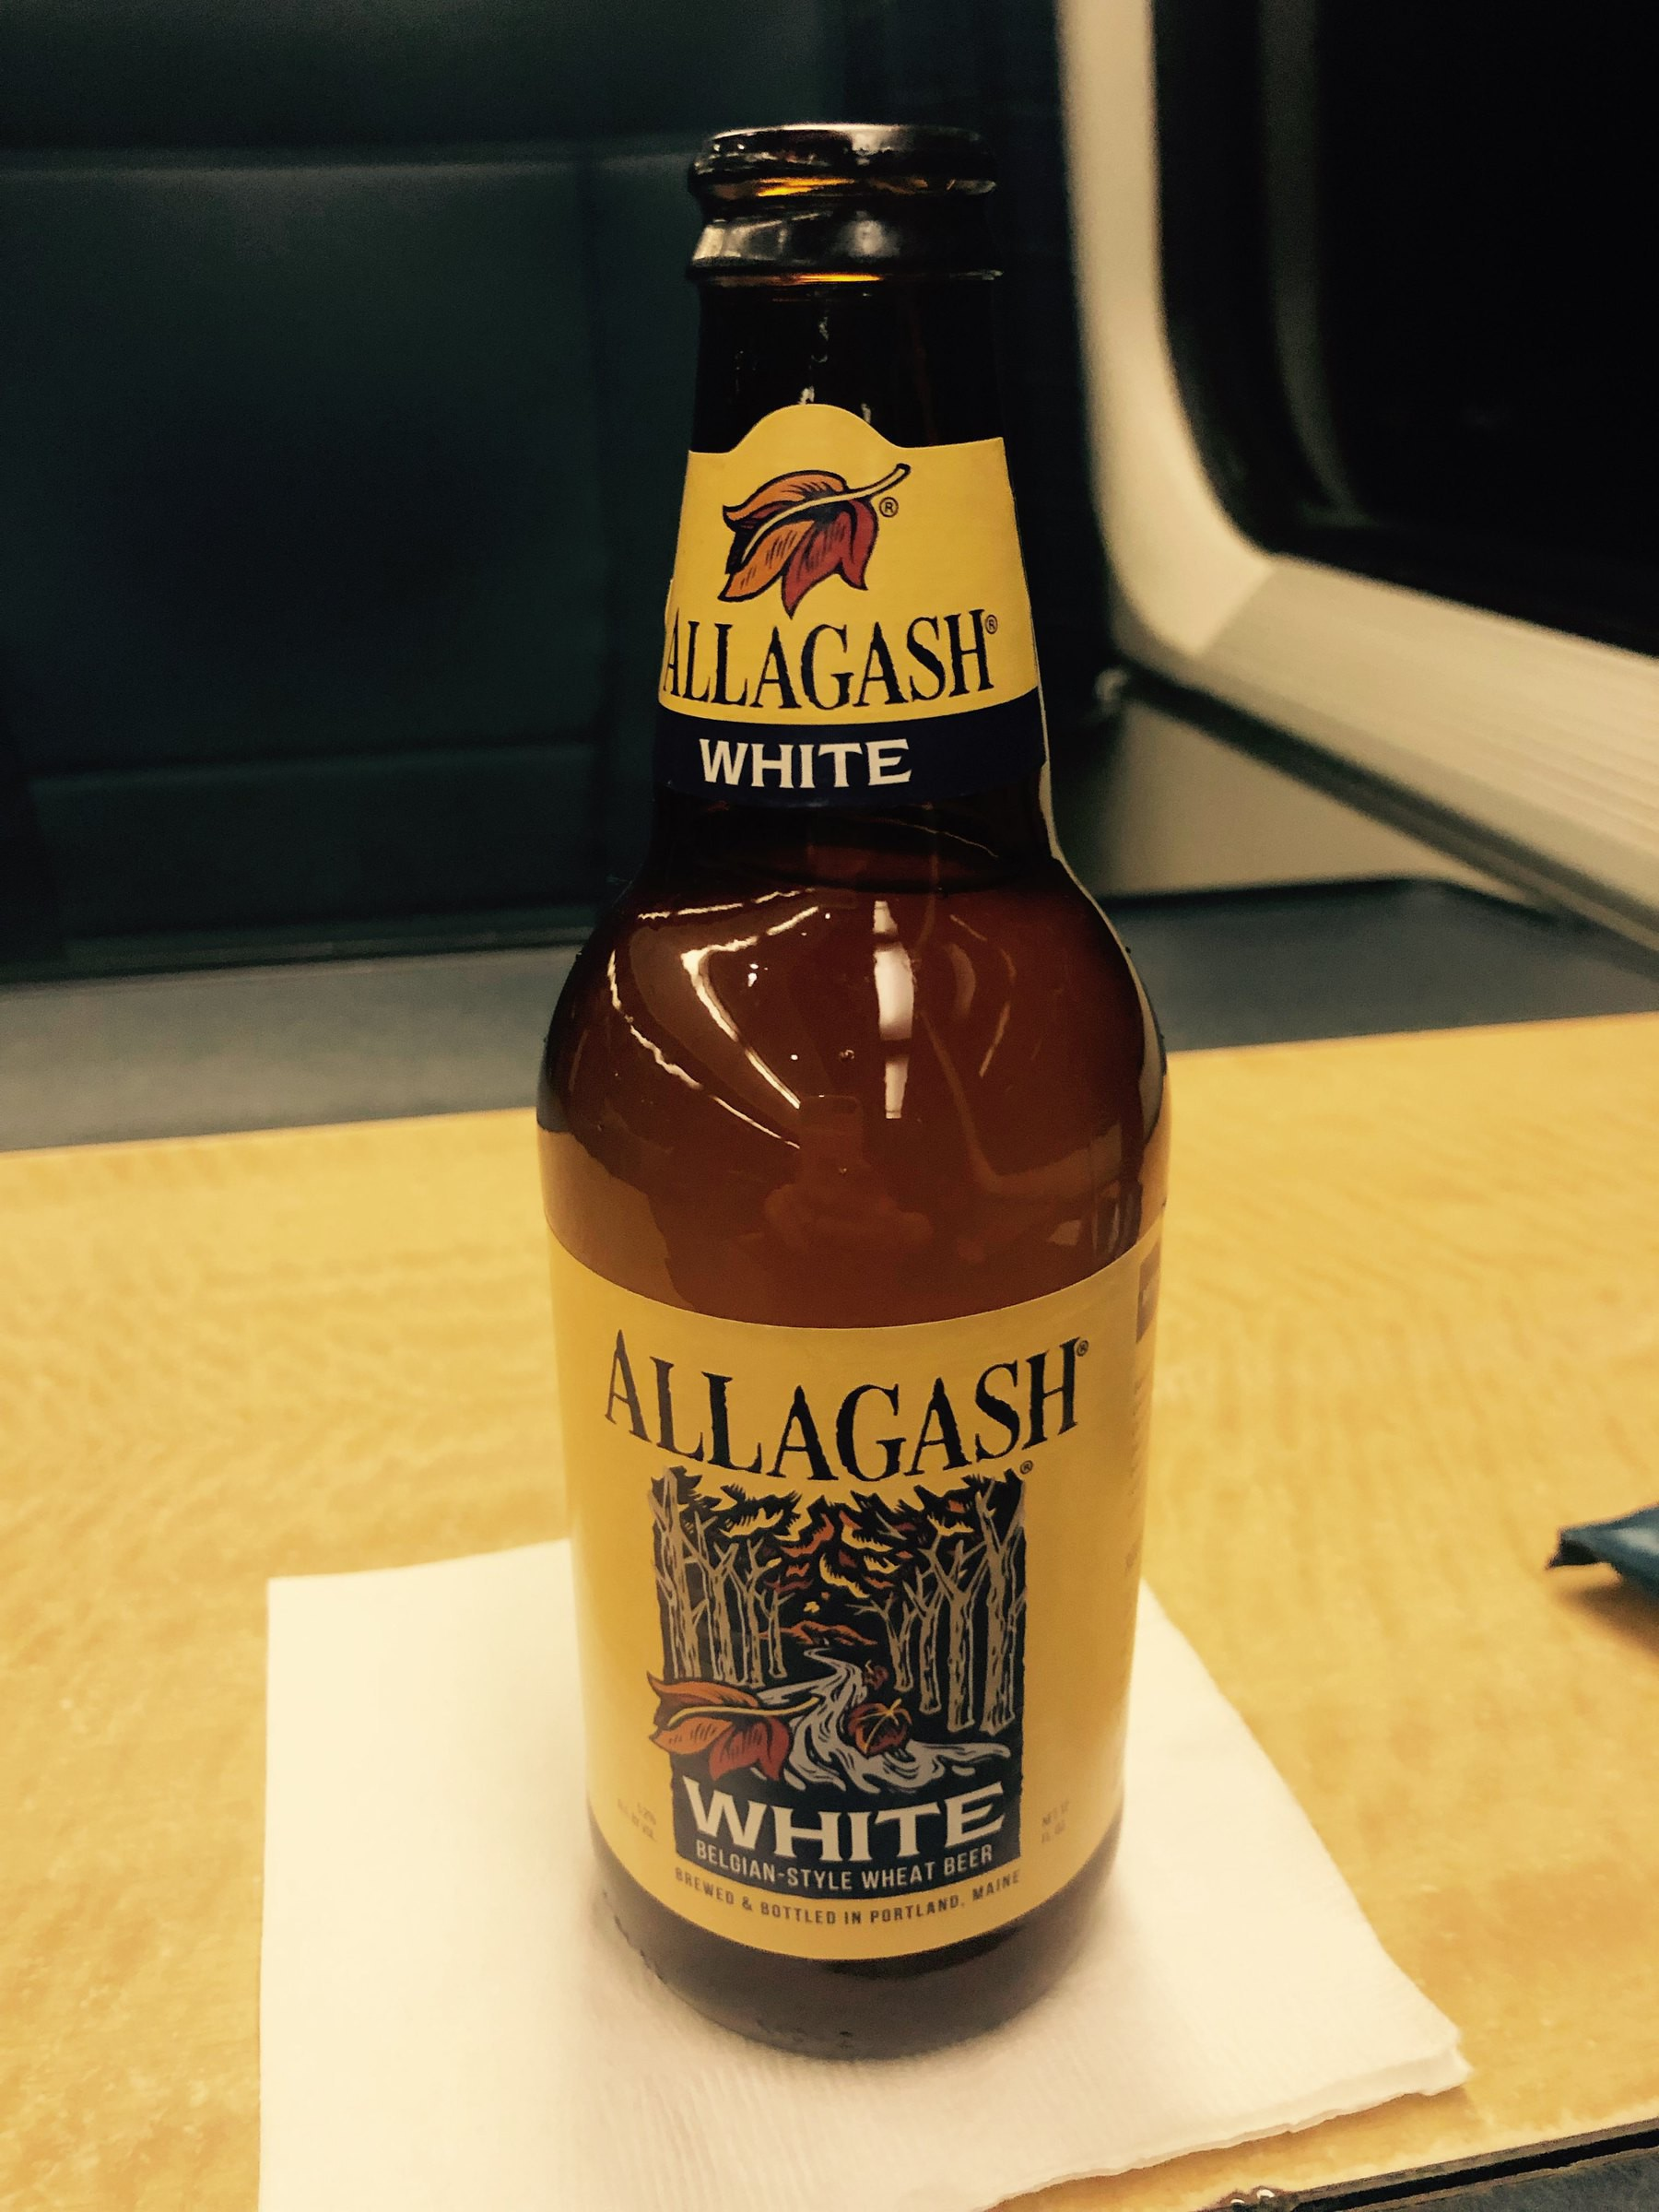 Bottle of Allagash White beer.